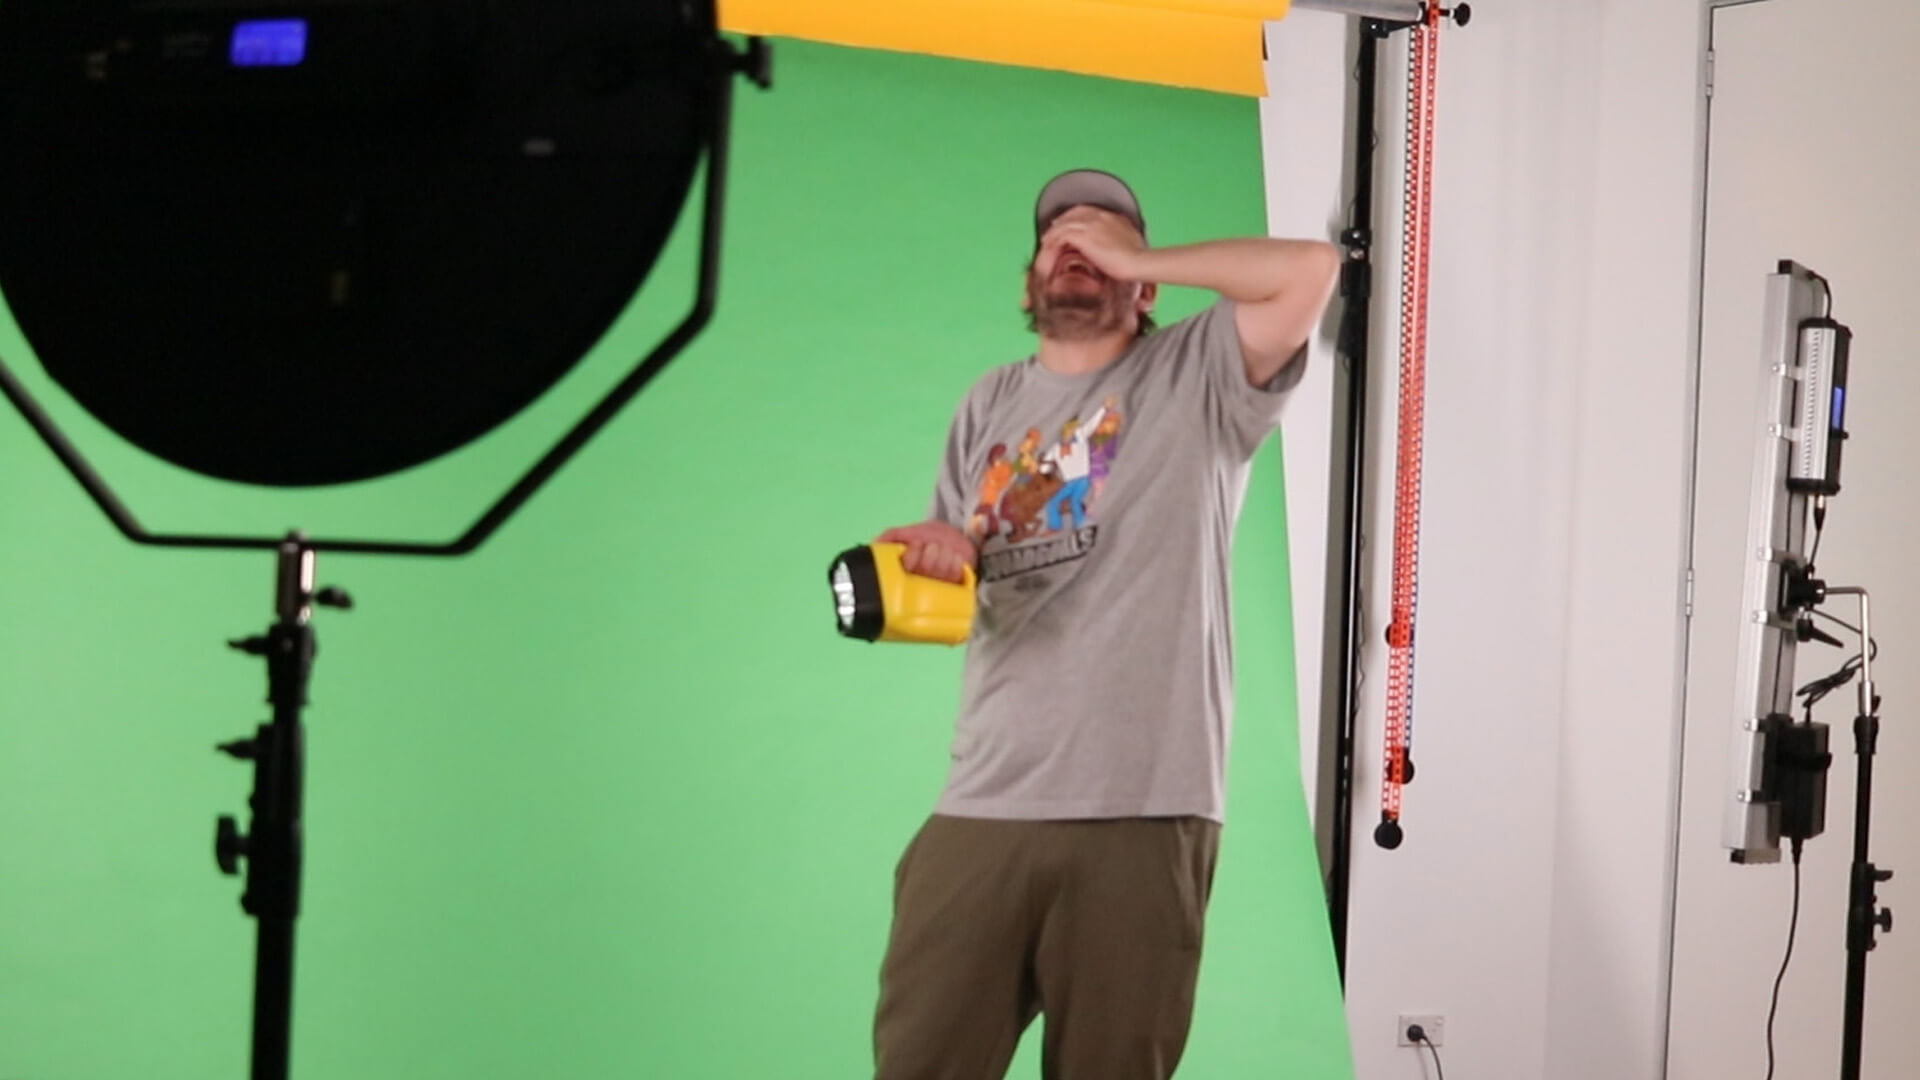 GREEN SCREEN - When you can't be on location, film on our green screen. We use a top end camera to ensure a clean key and an audio professional to record sound.Recording only; editing, alpha channelling, audio sync and motion graphics are available for an extra cost.$160 for 1 hour, $425 for 4 hours